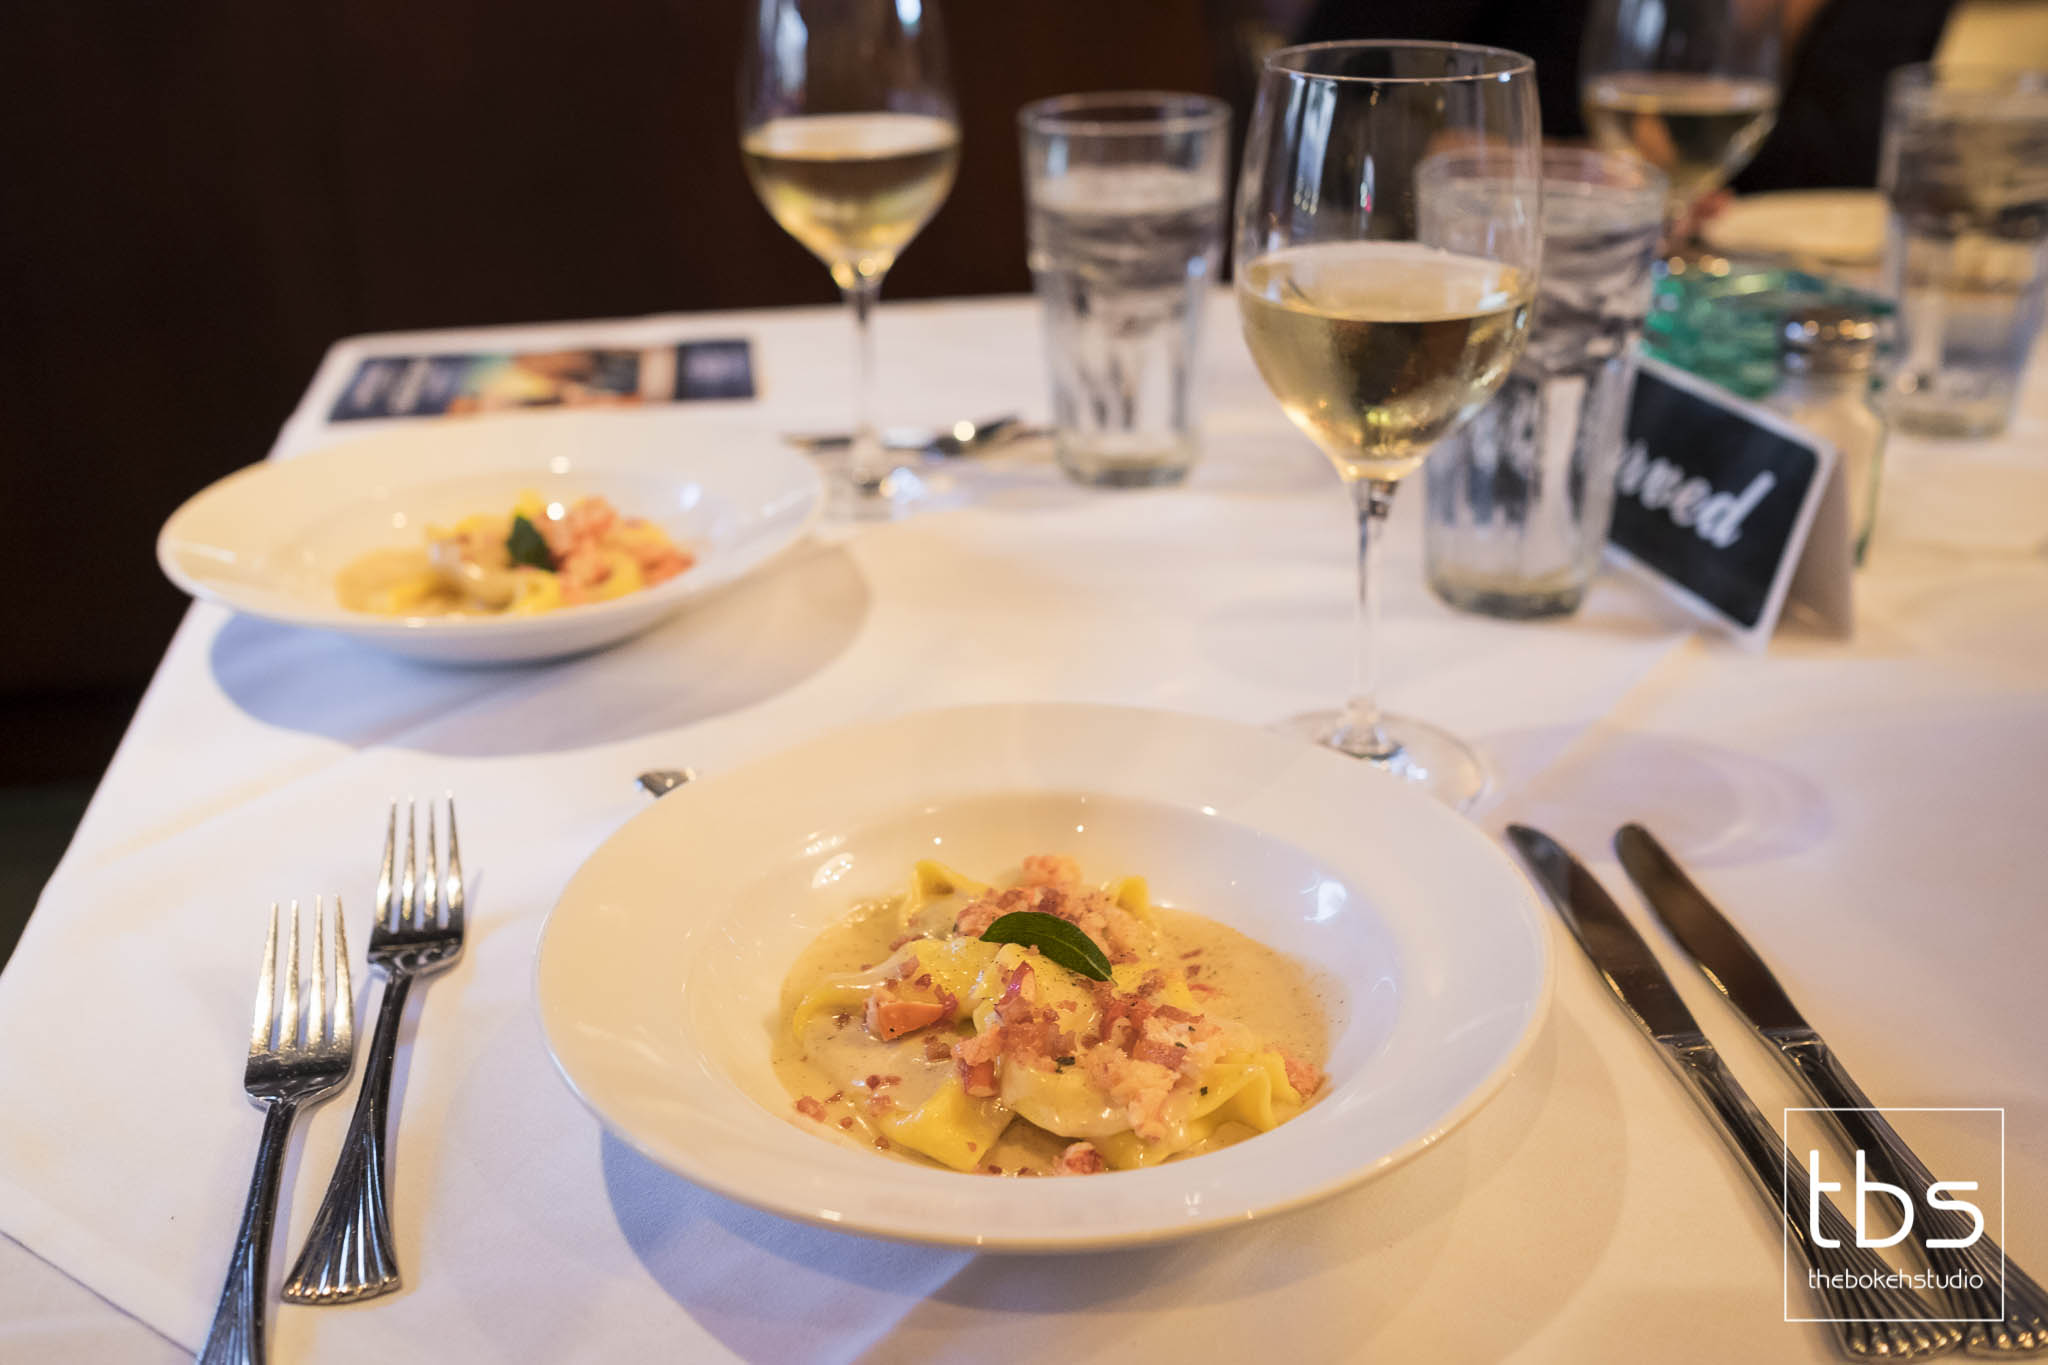 Italy uncorked wine dinner by mitchellsfm in orlando for Mitchell s fish market locations